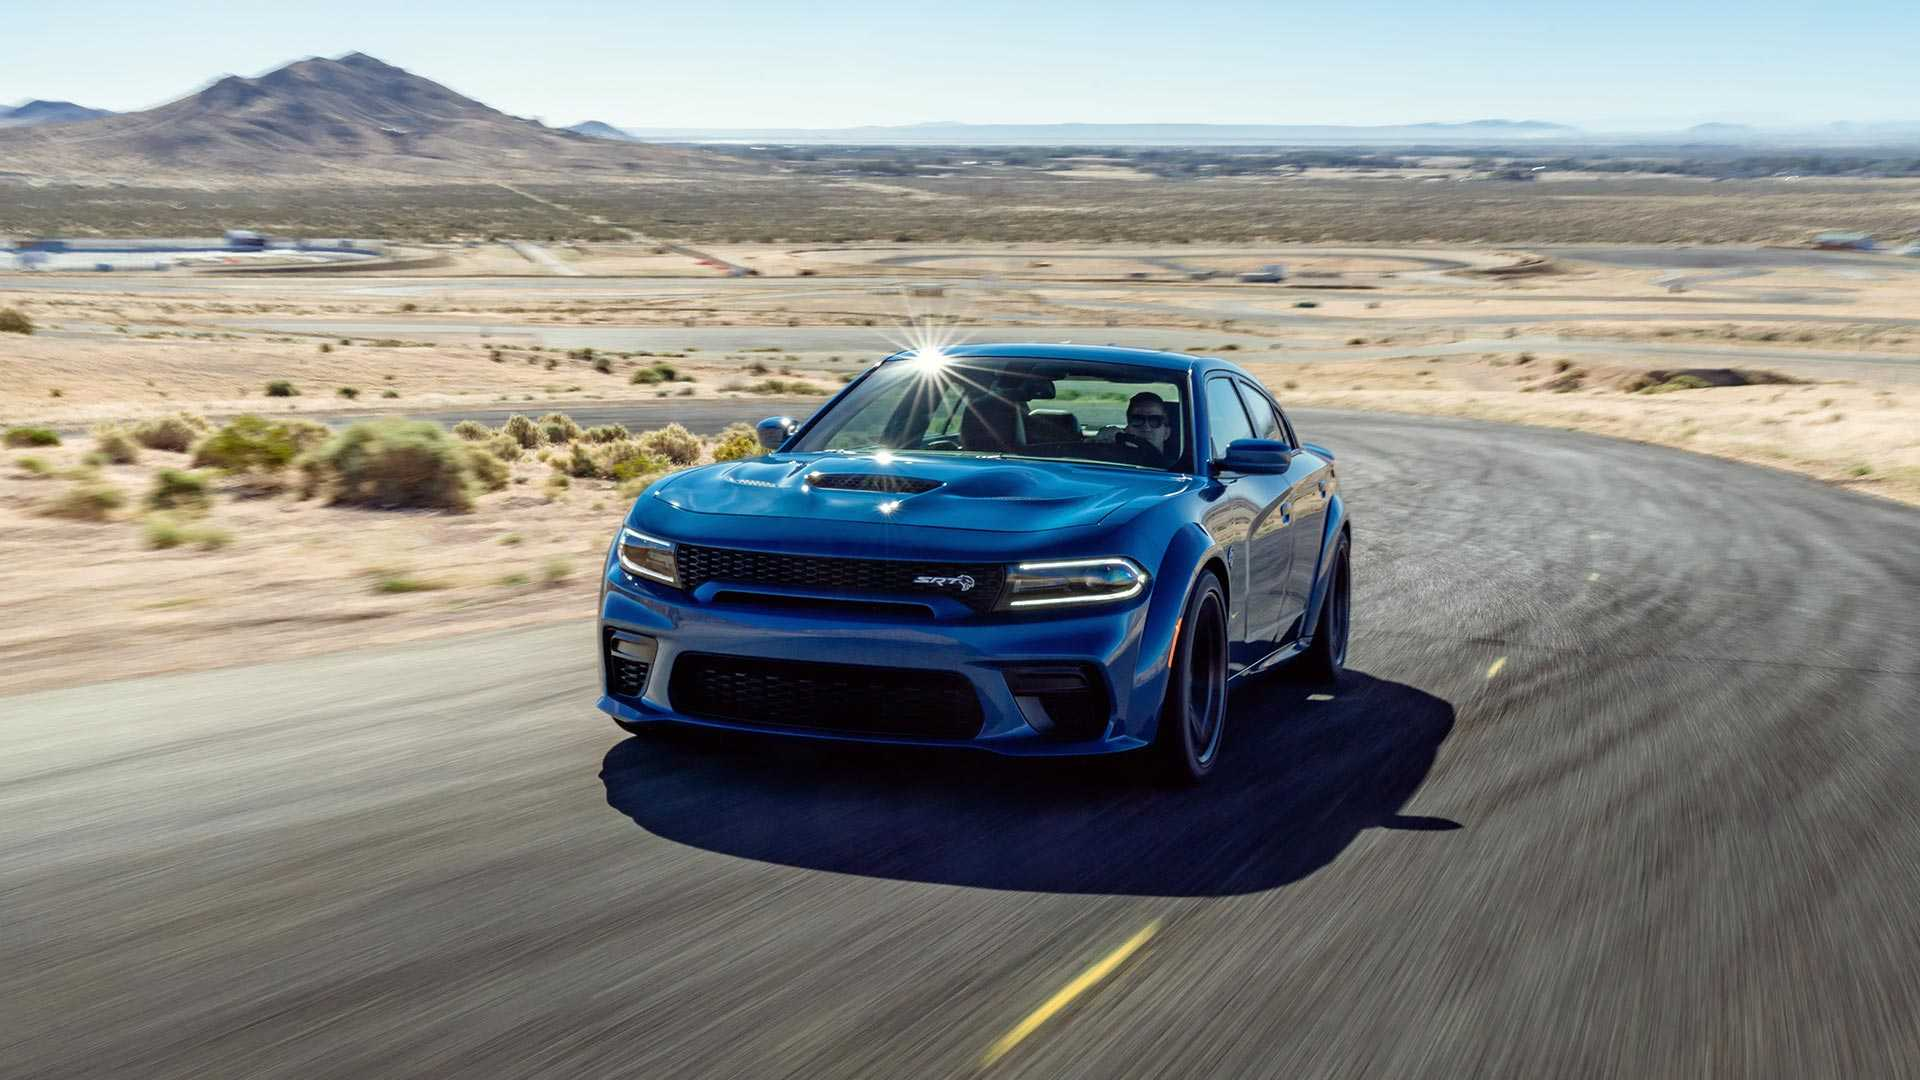 2020 Dodge Charger SRT Hellcat Widebody Front Three-Quarter Wallpapers #1 of 79